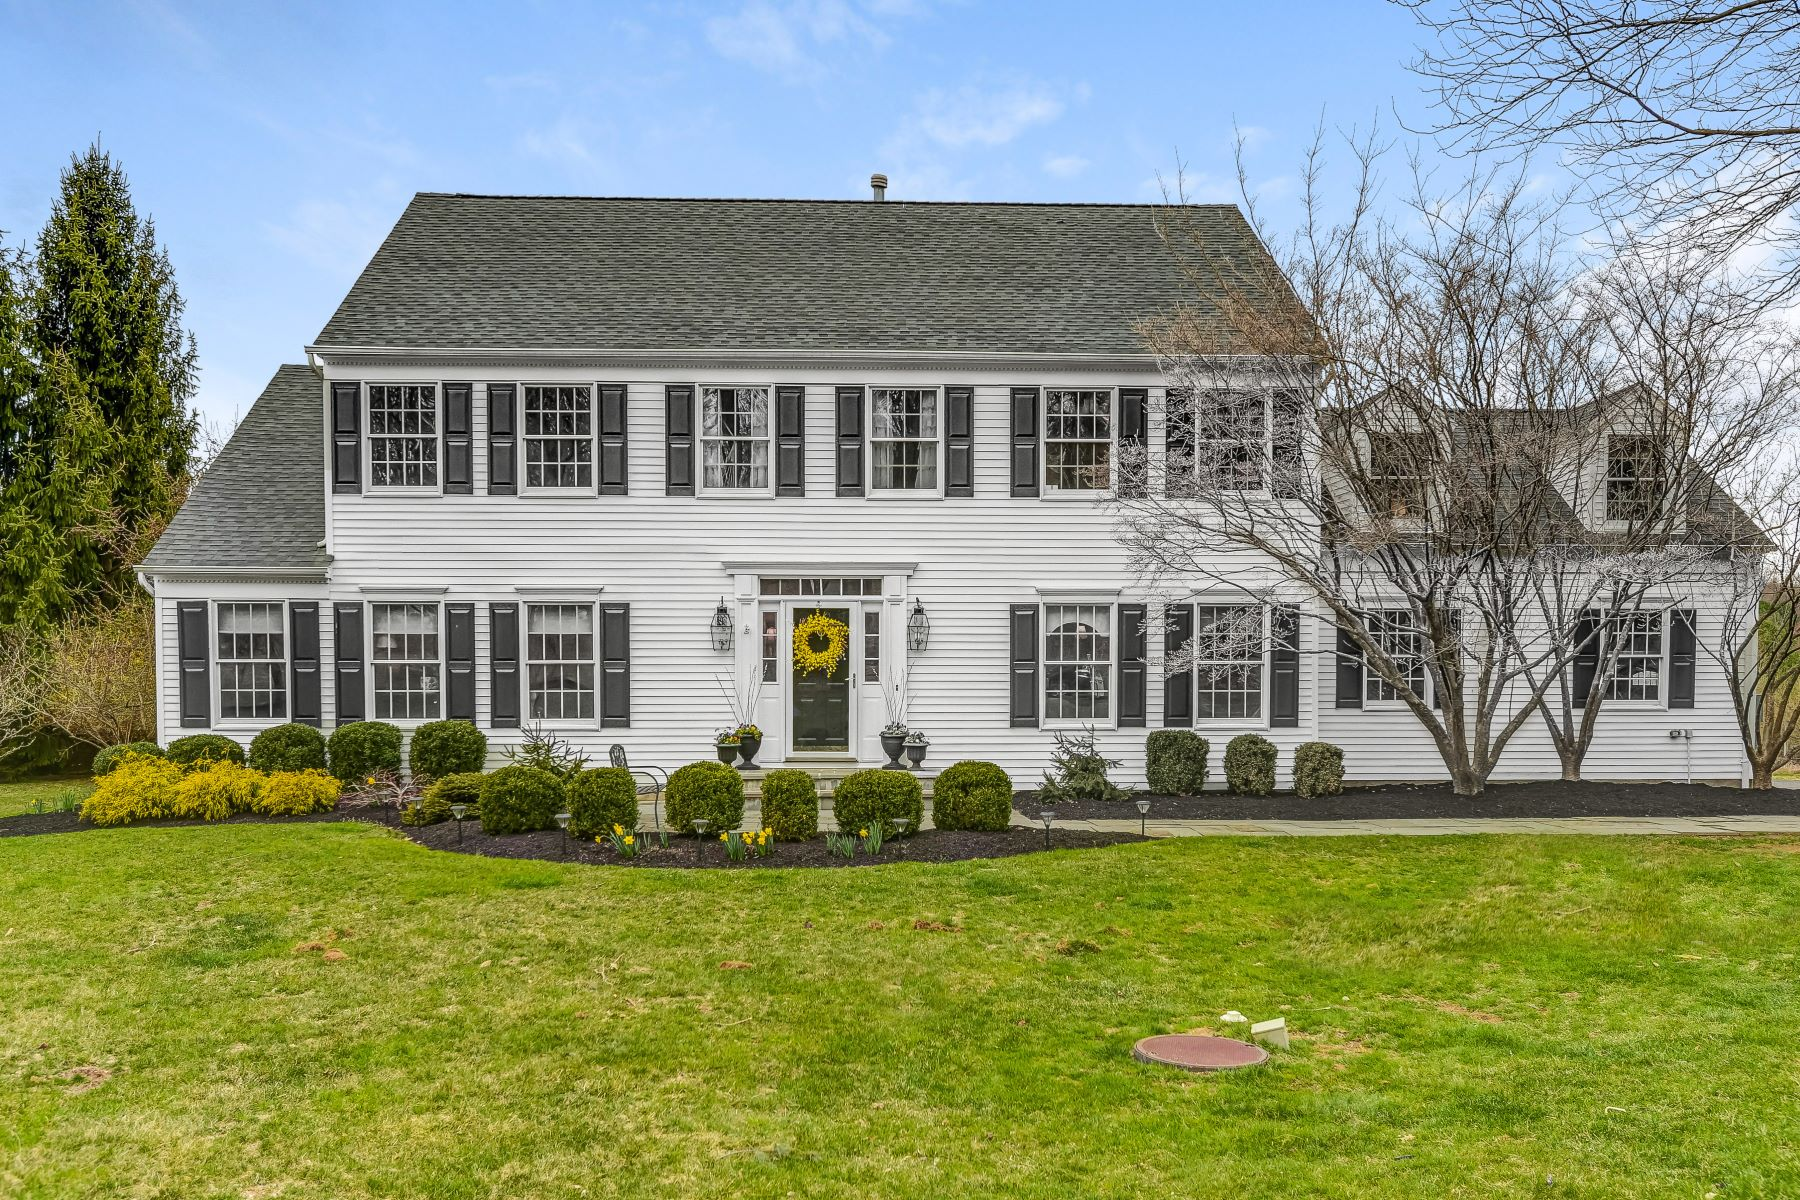 Single Family Home for Sale at Beautiful Setting 9 Willow Drive, Chester, New Jersey 07930 United States